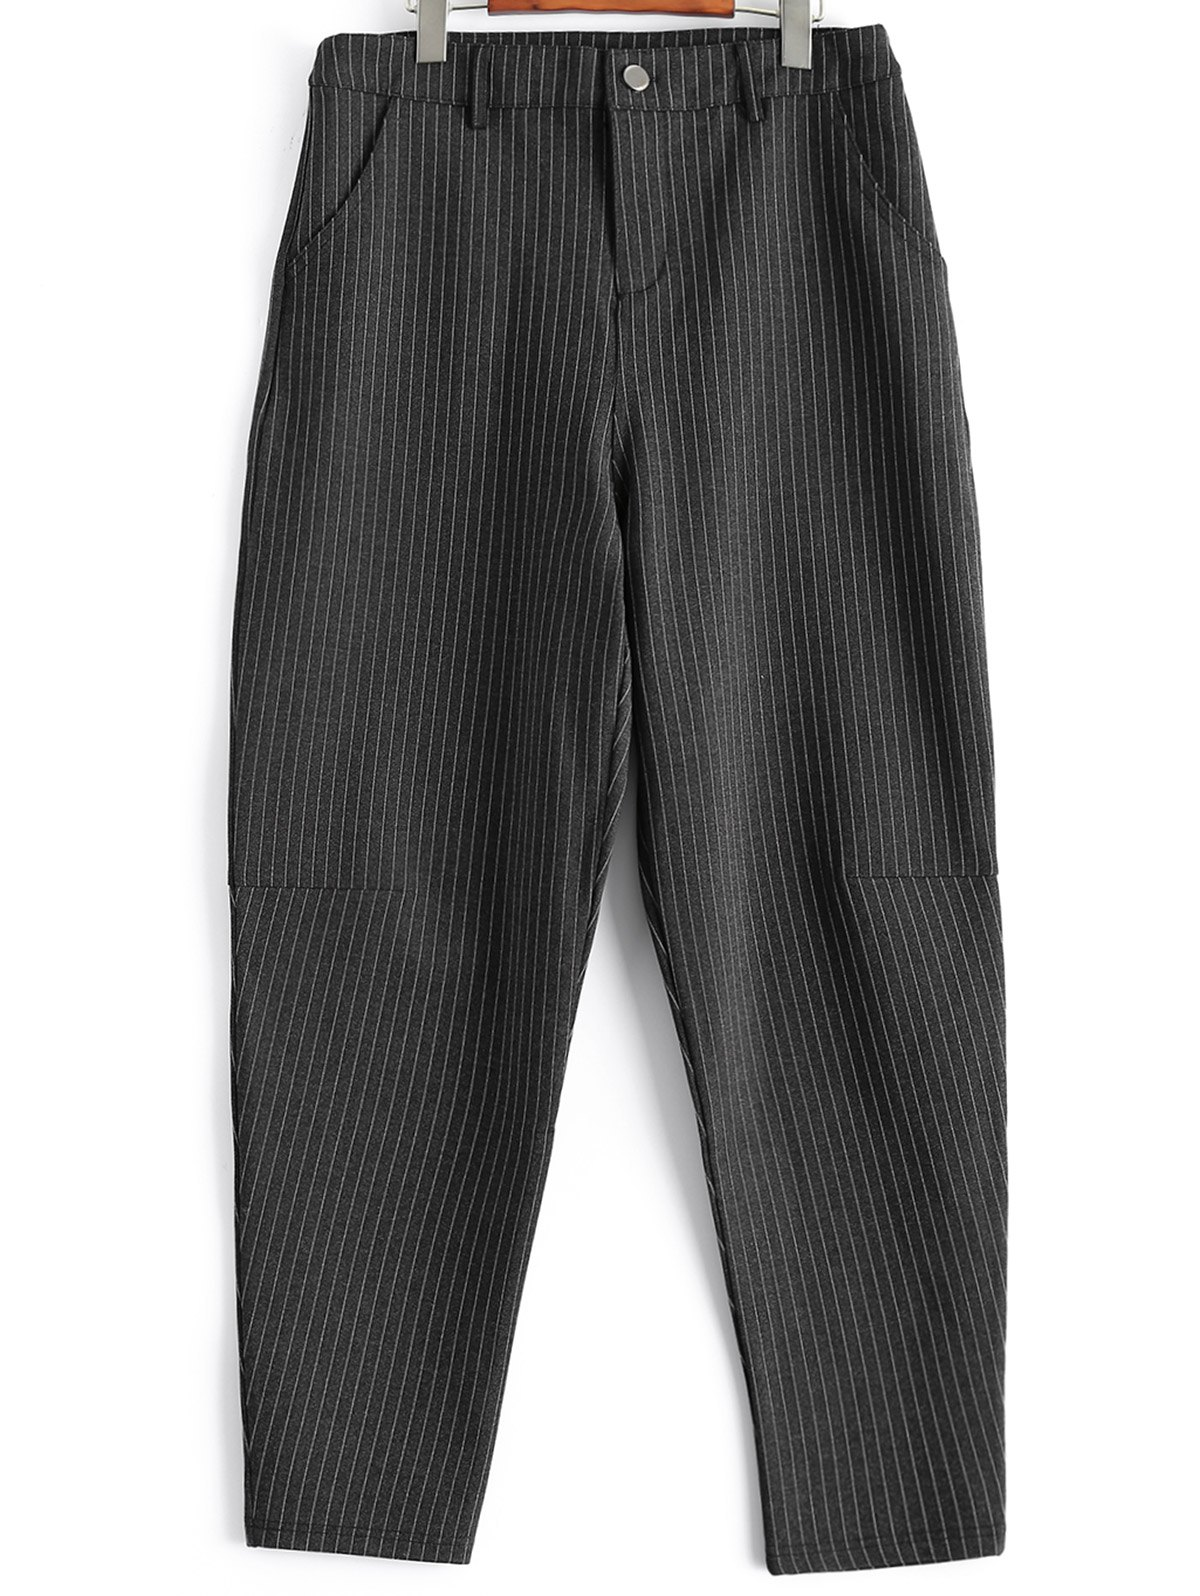 Plus Size Striped Harem Pants plus size striped harem pants